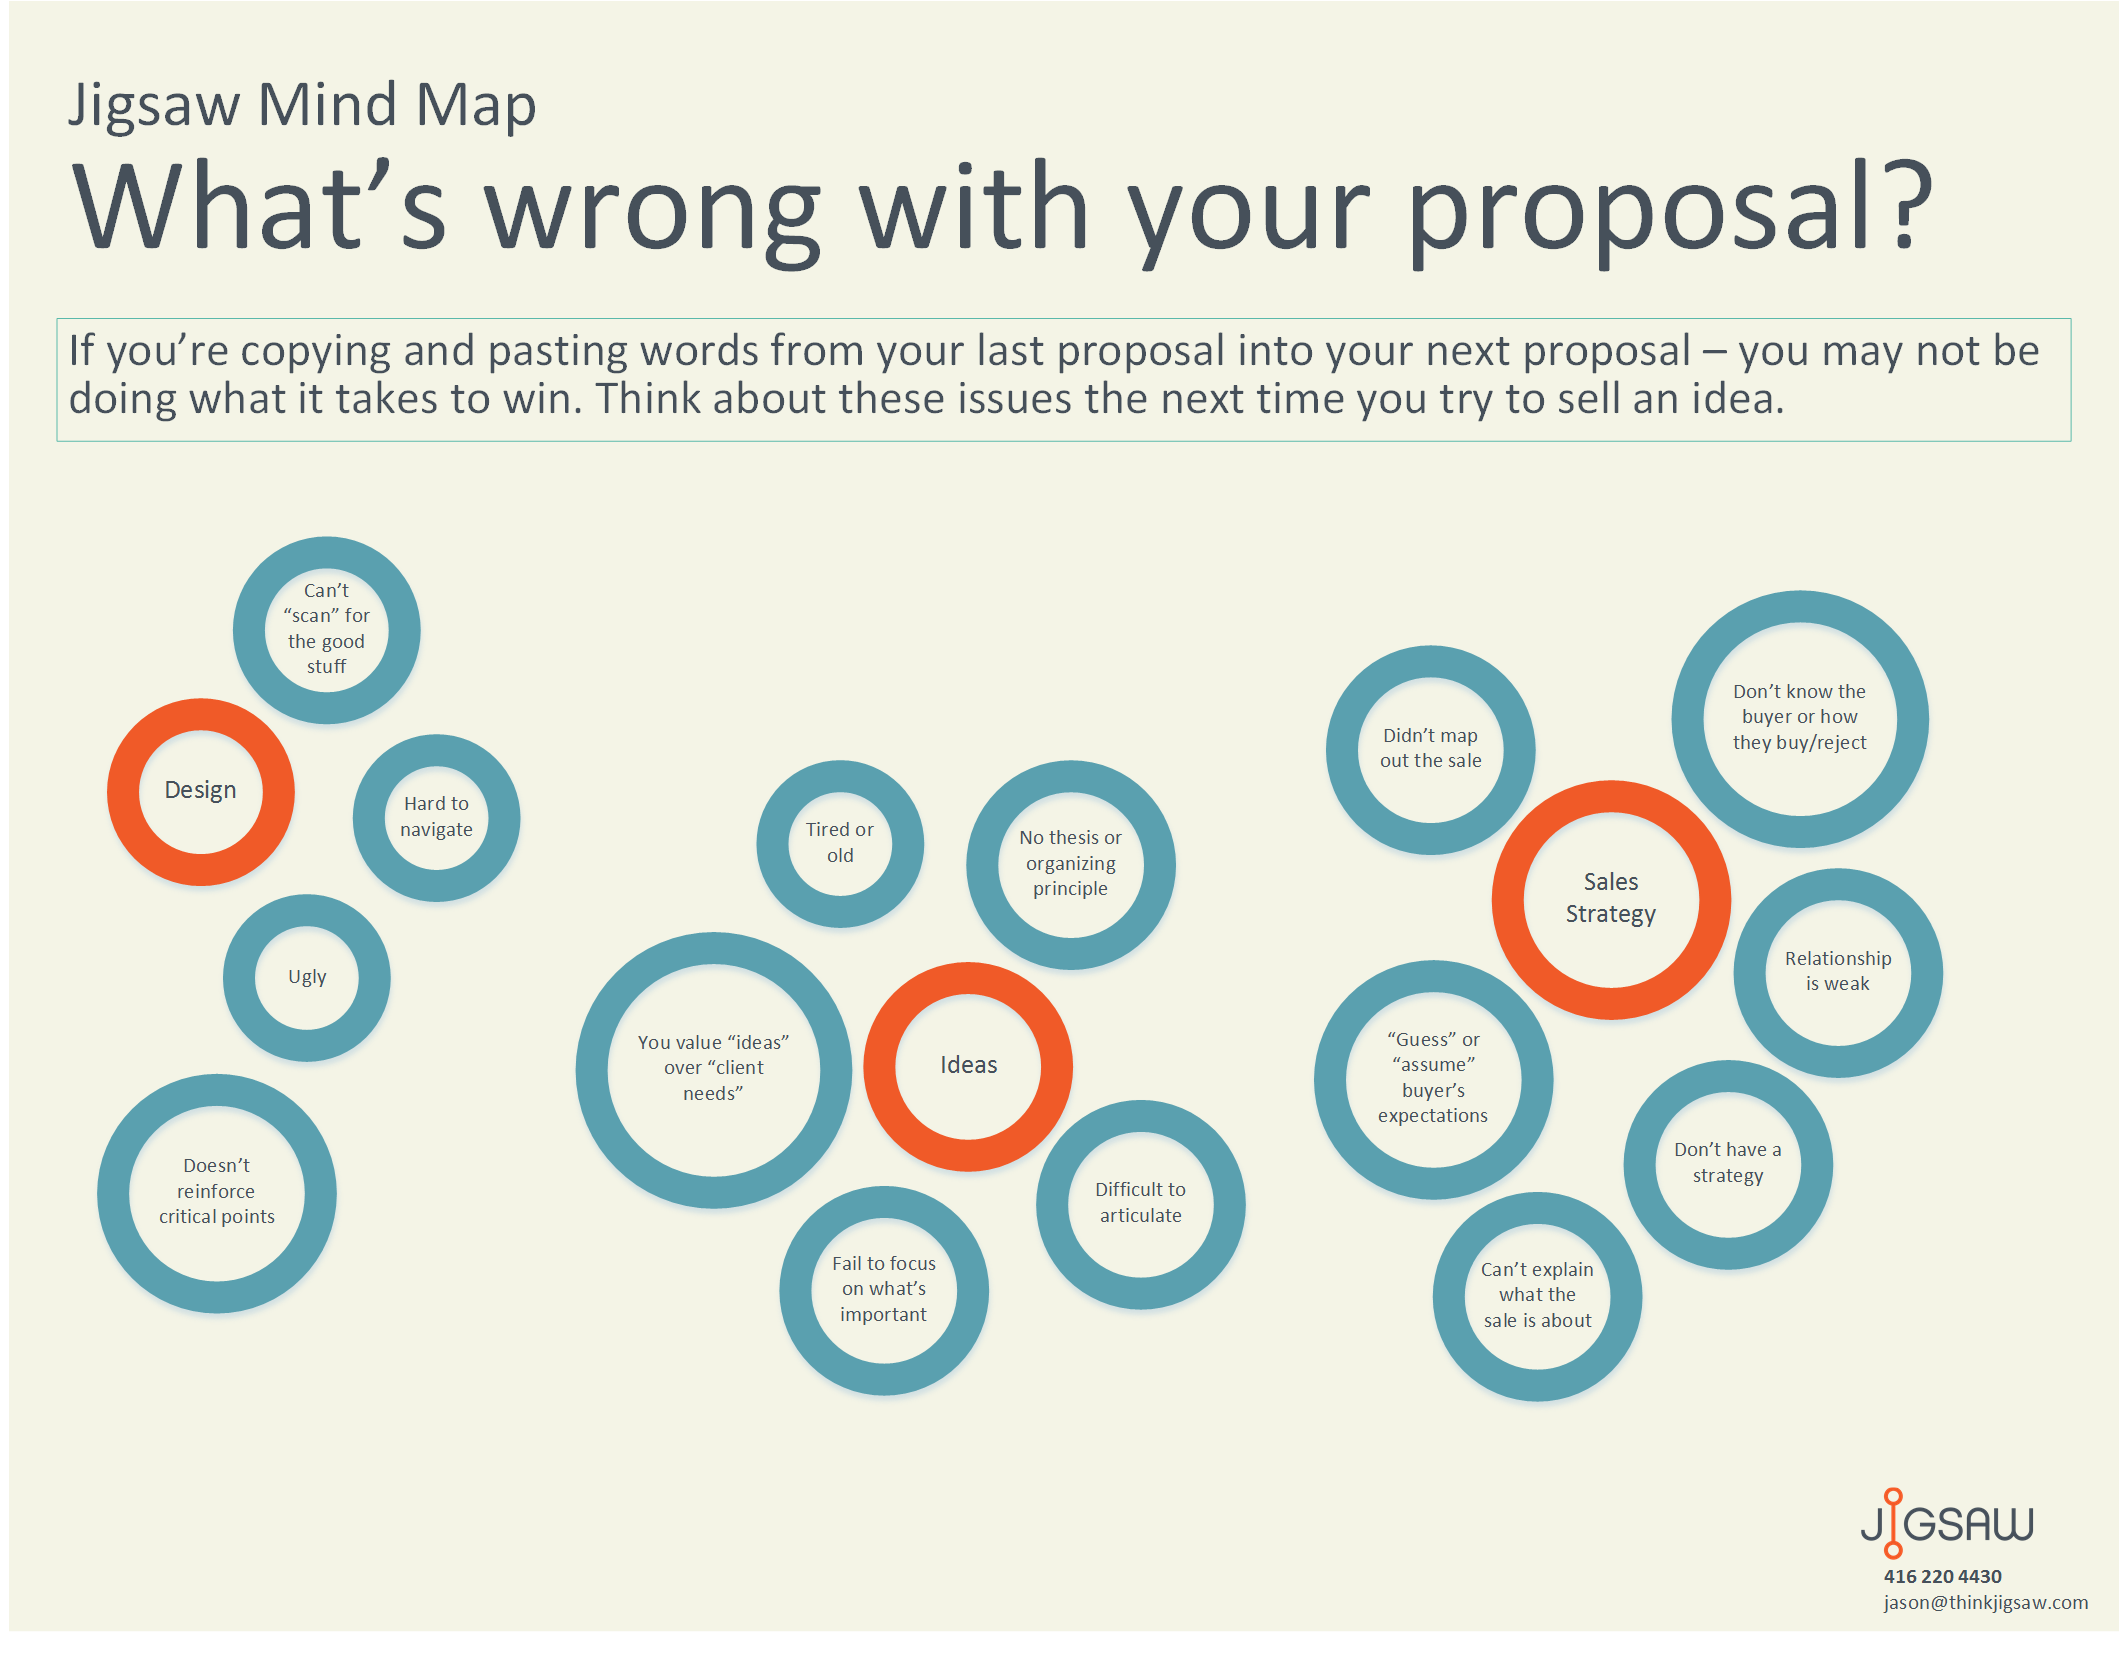 Jigsaw Mind Map – What's wrong with your proposal?